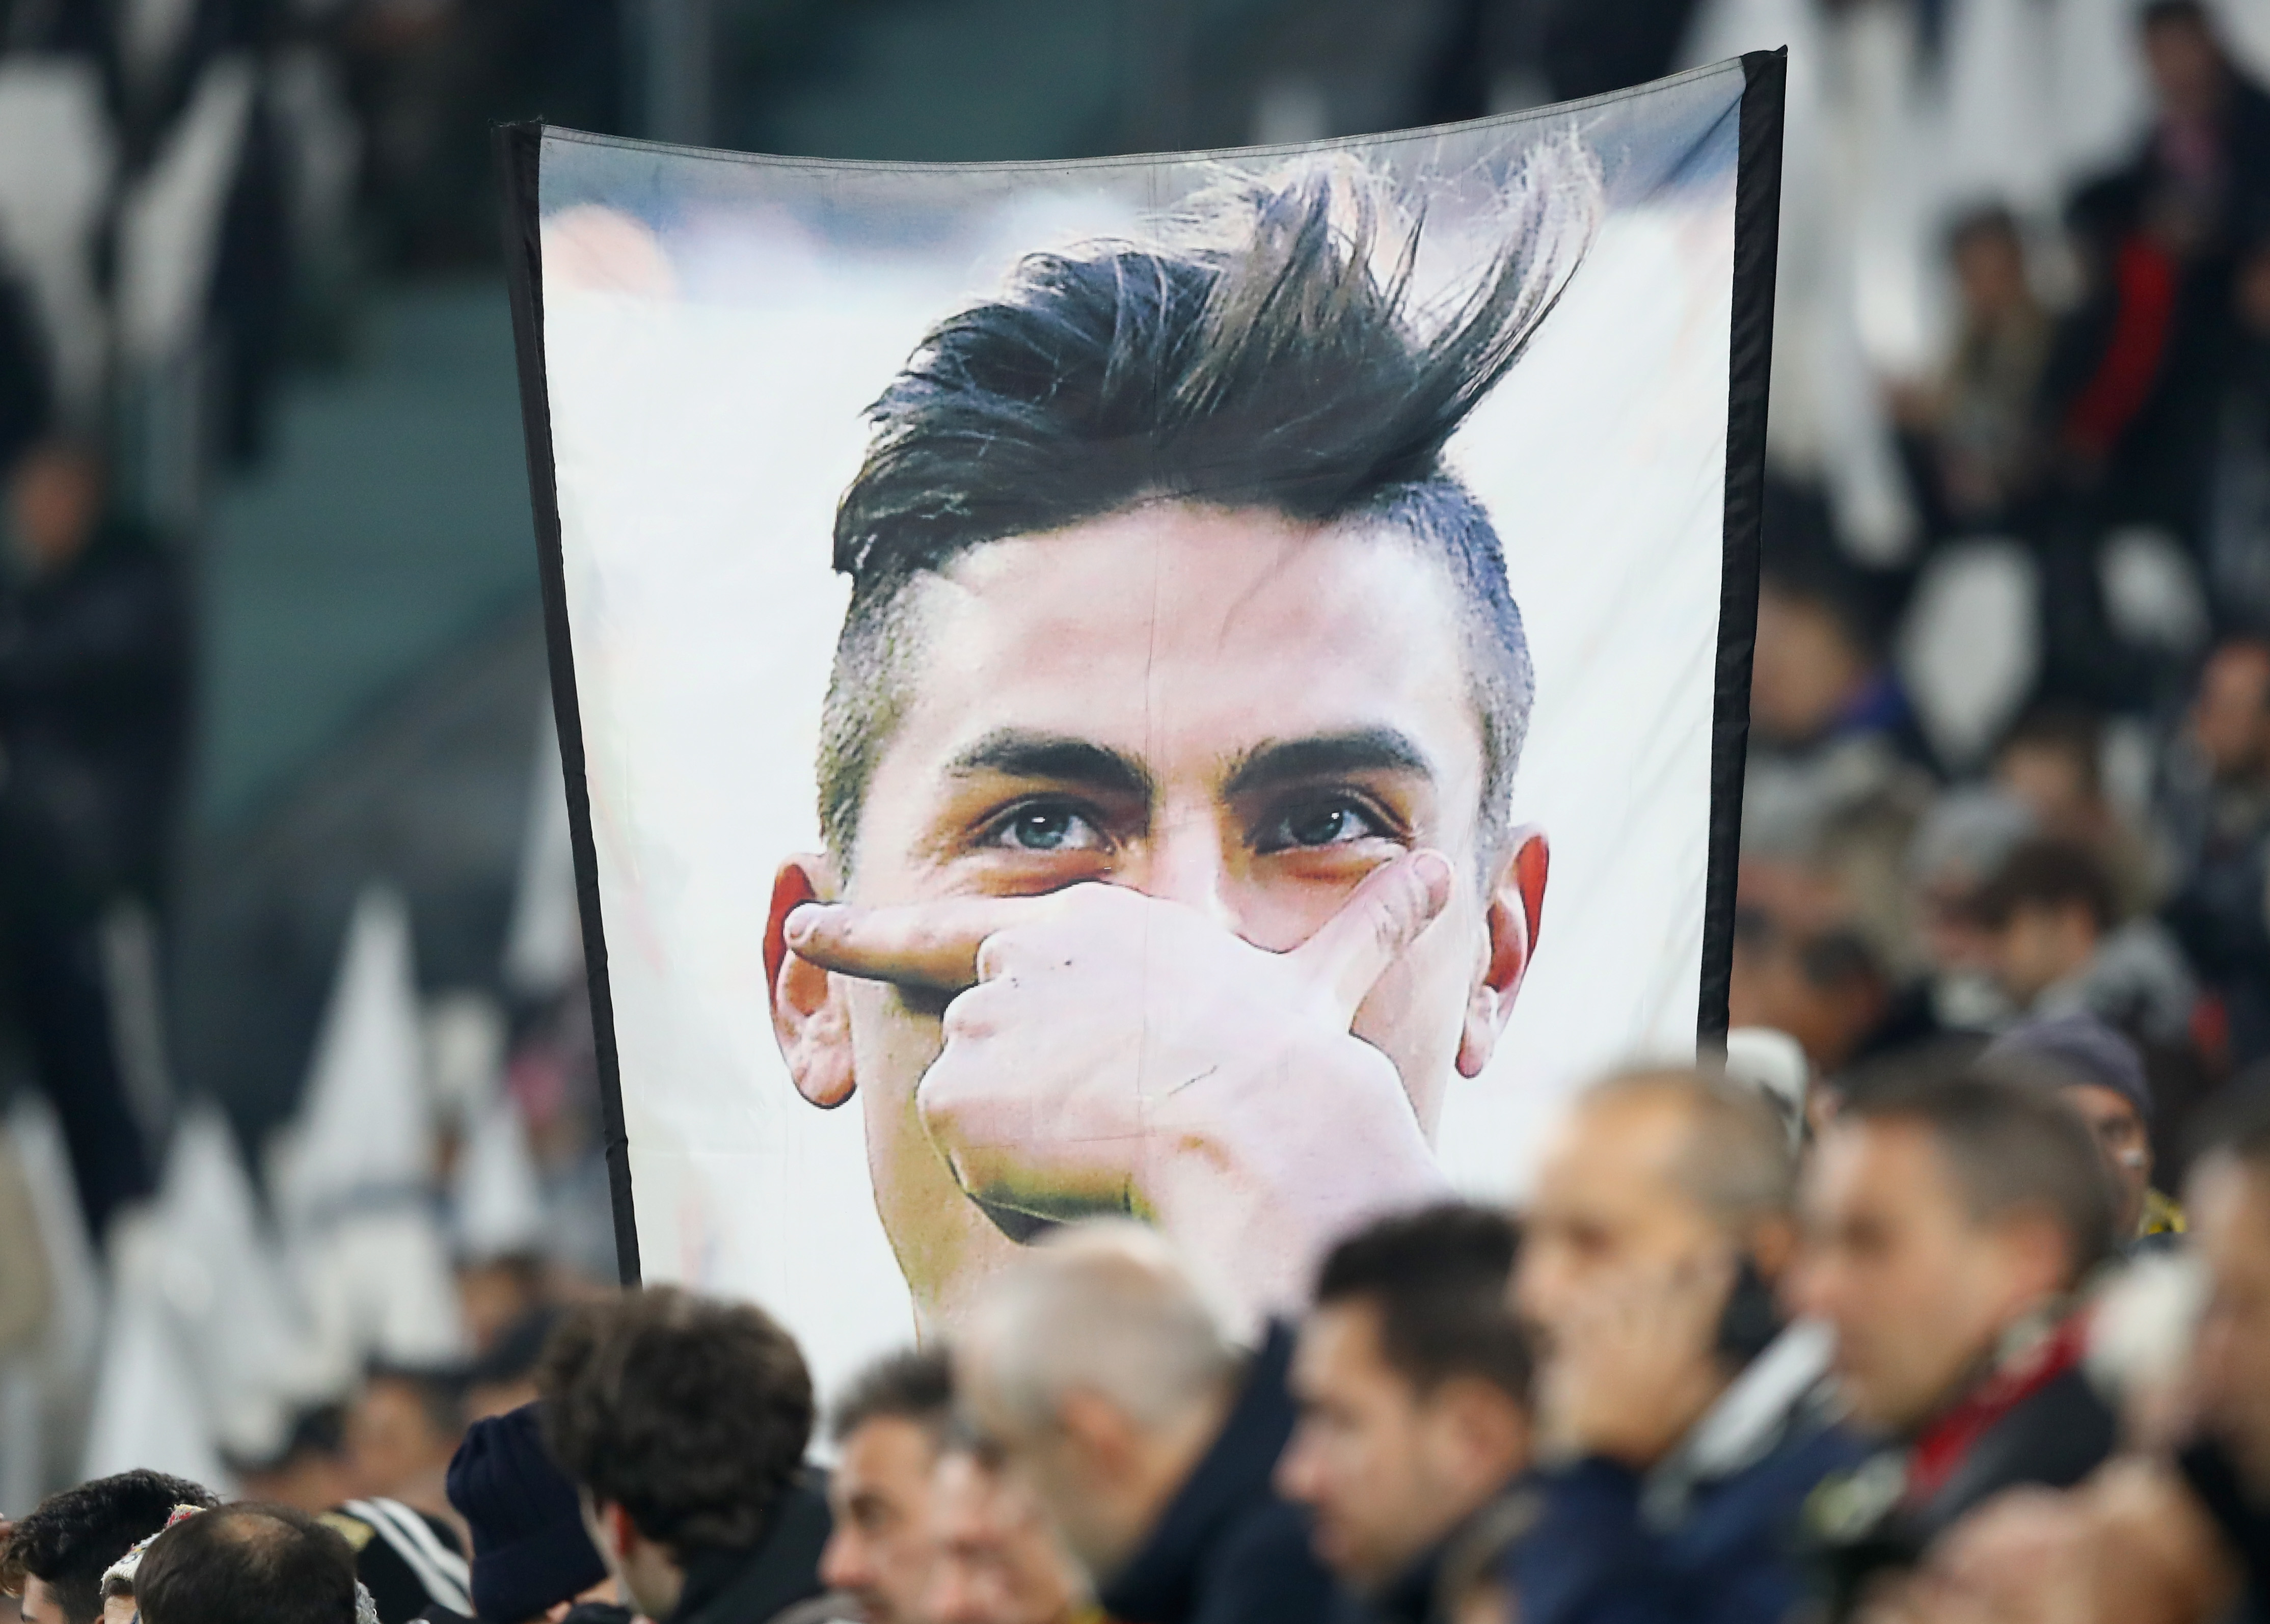 Video – Behind the scenes of Juve's friendly win over Atalanta